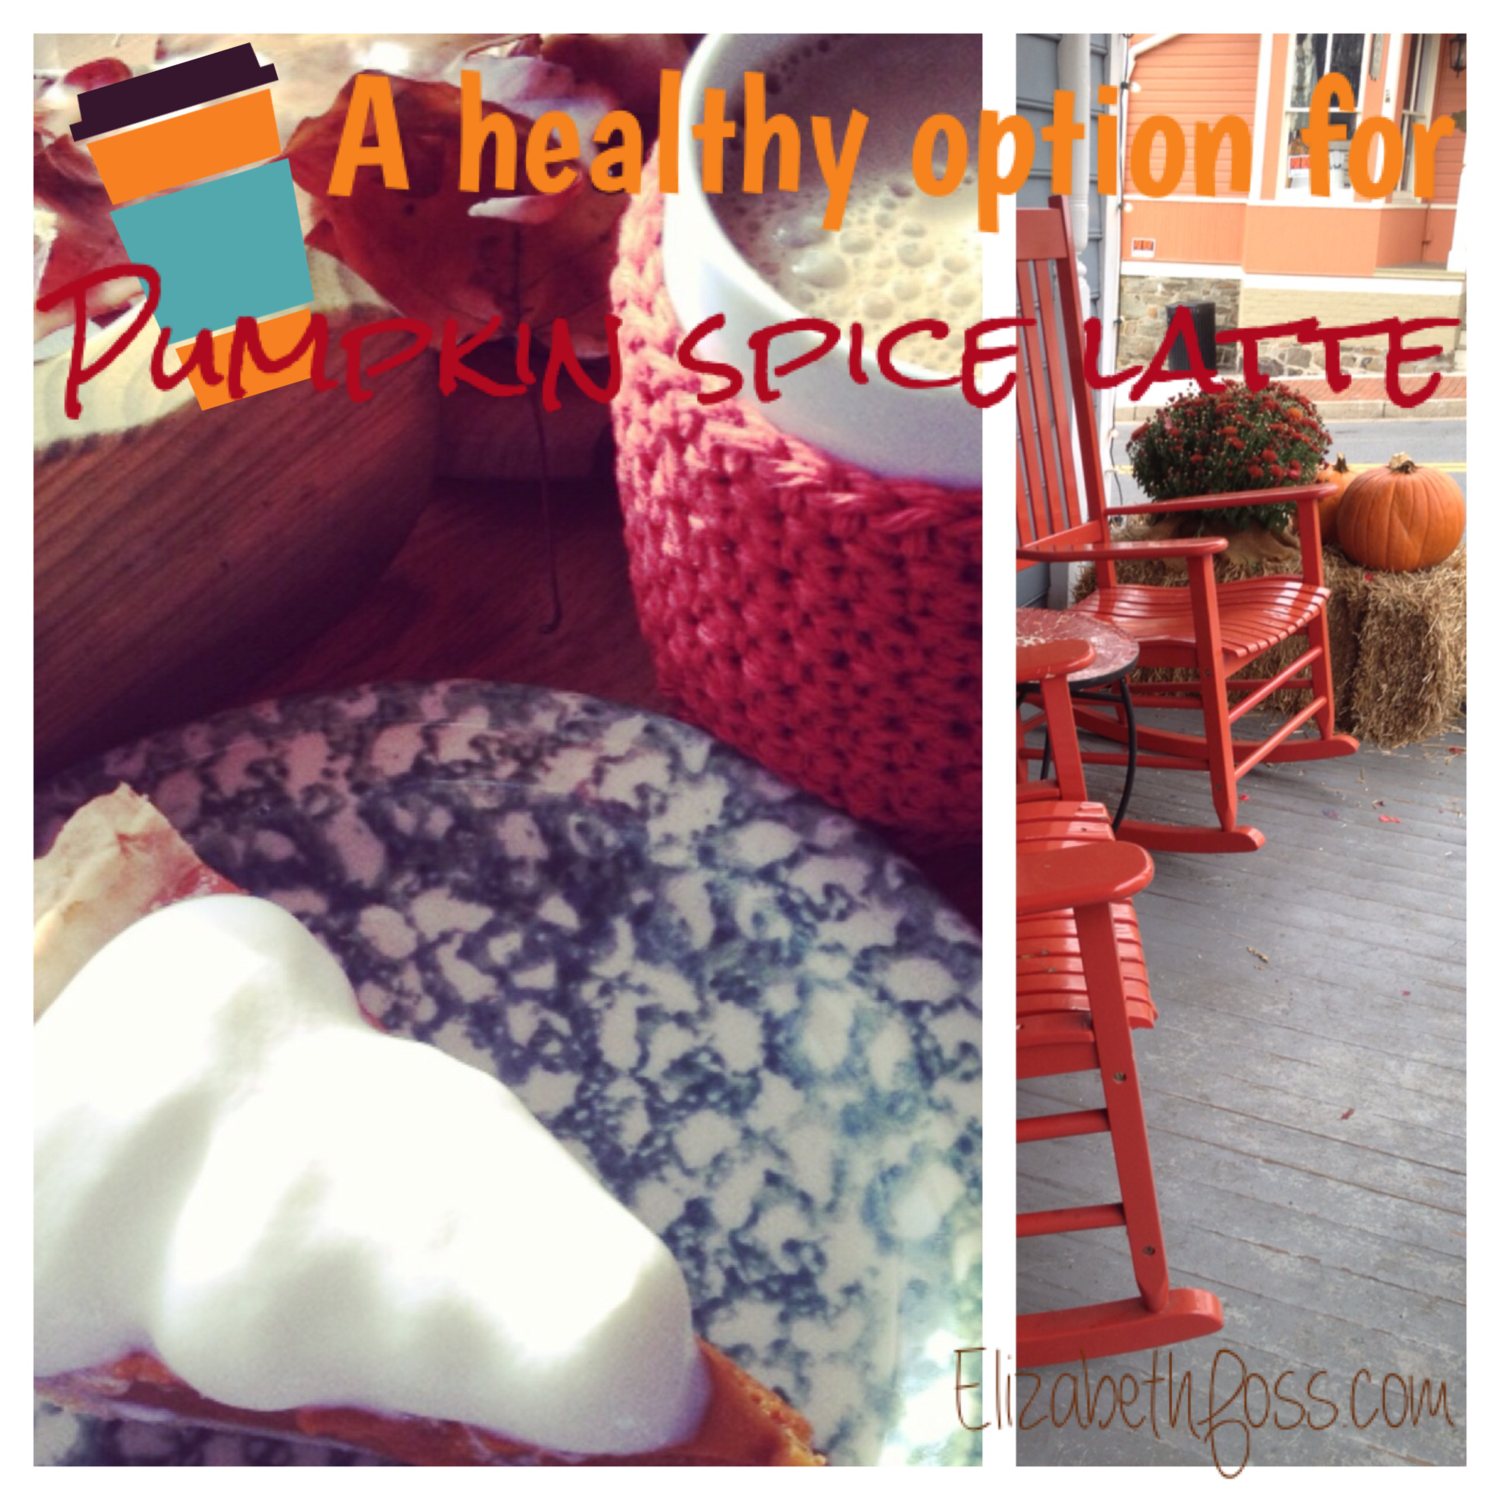 We're All About REAL: Pumpkin Spice Latte